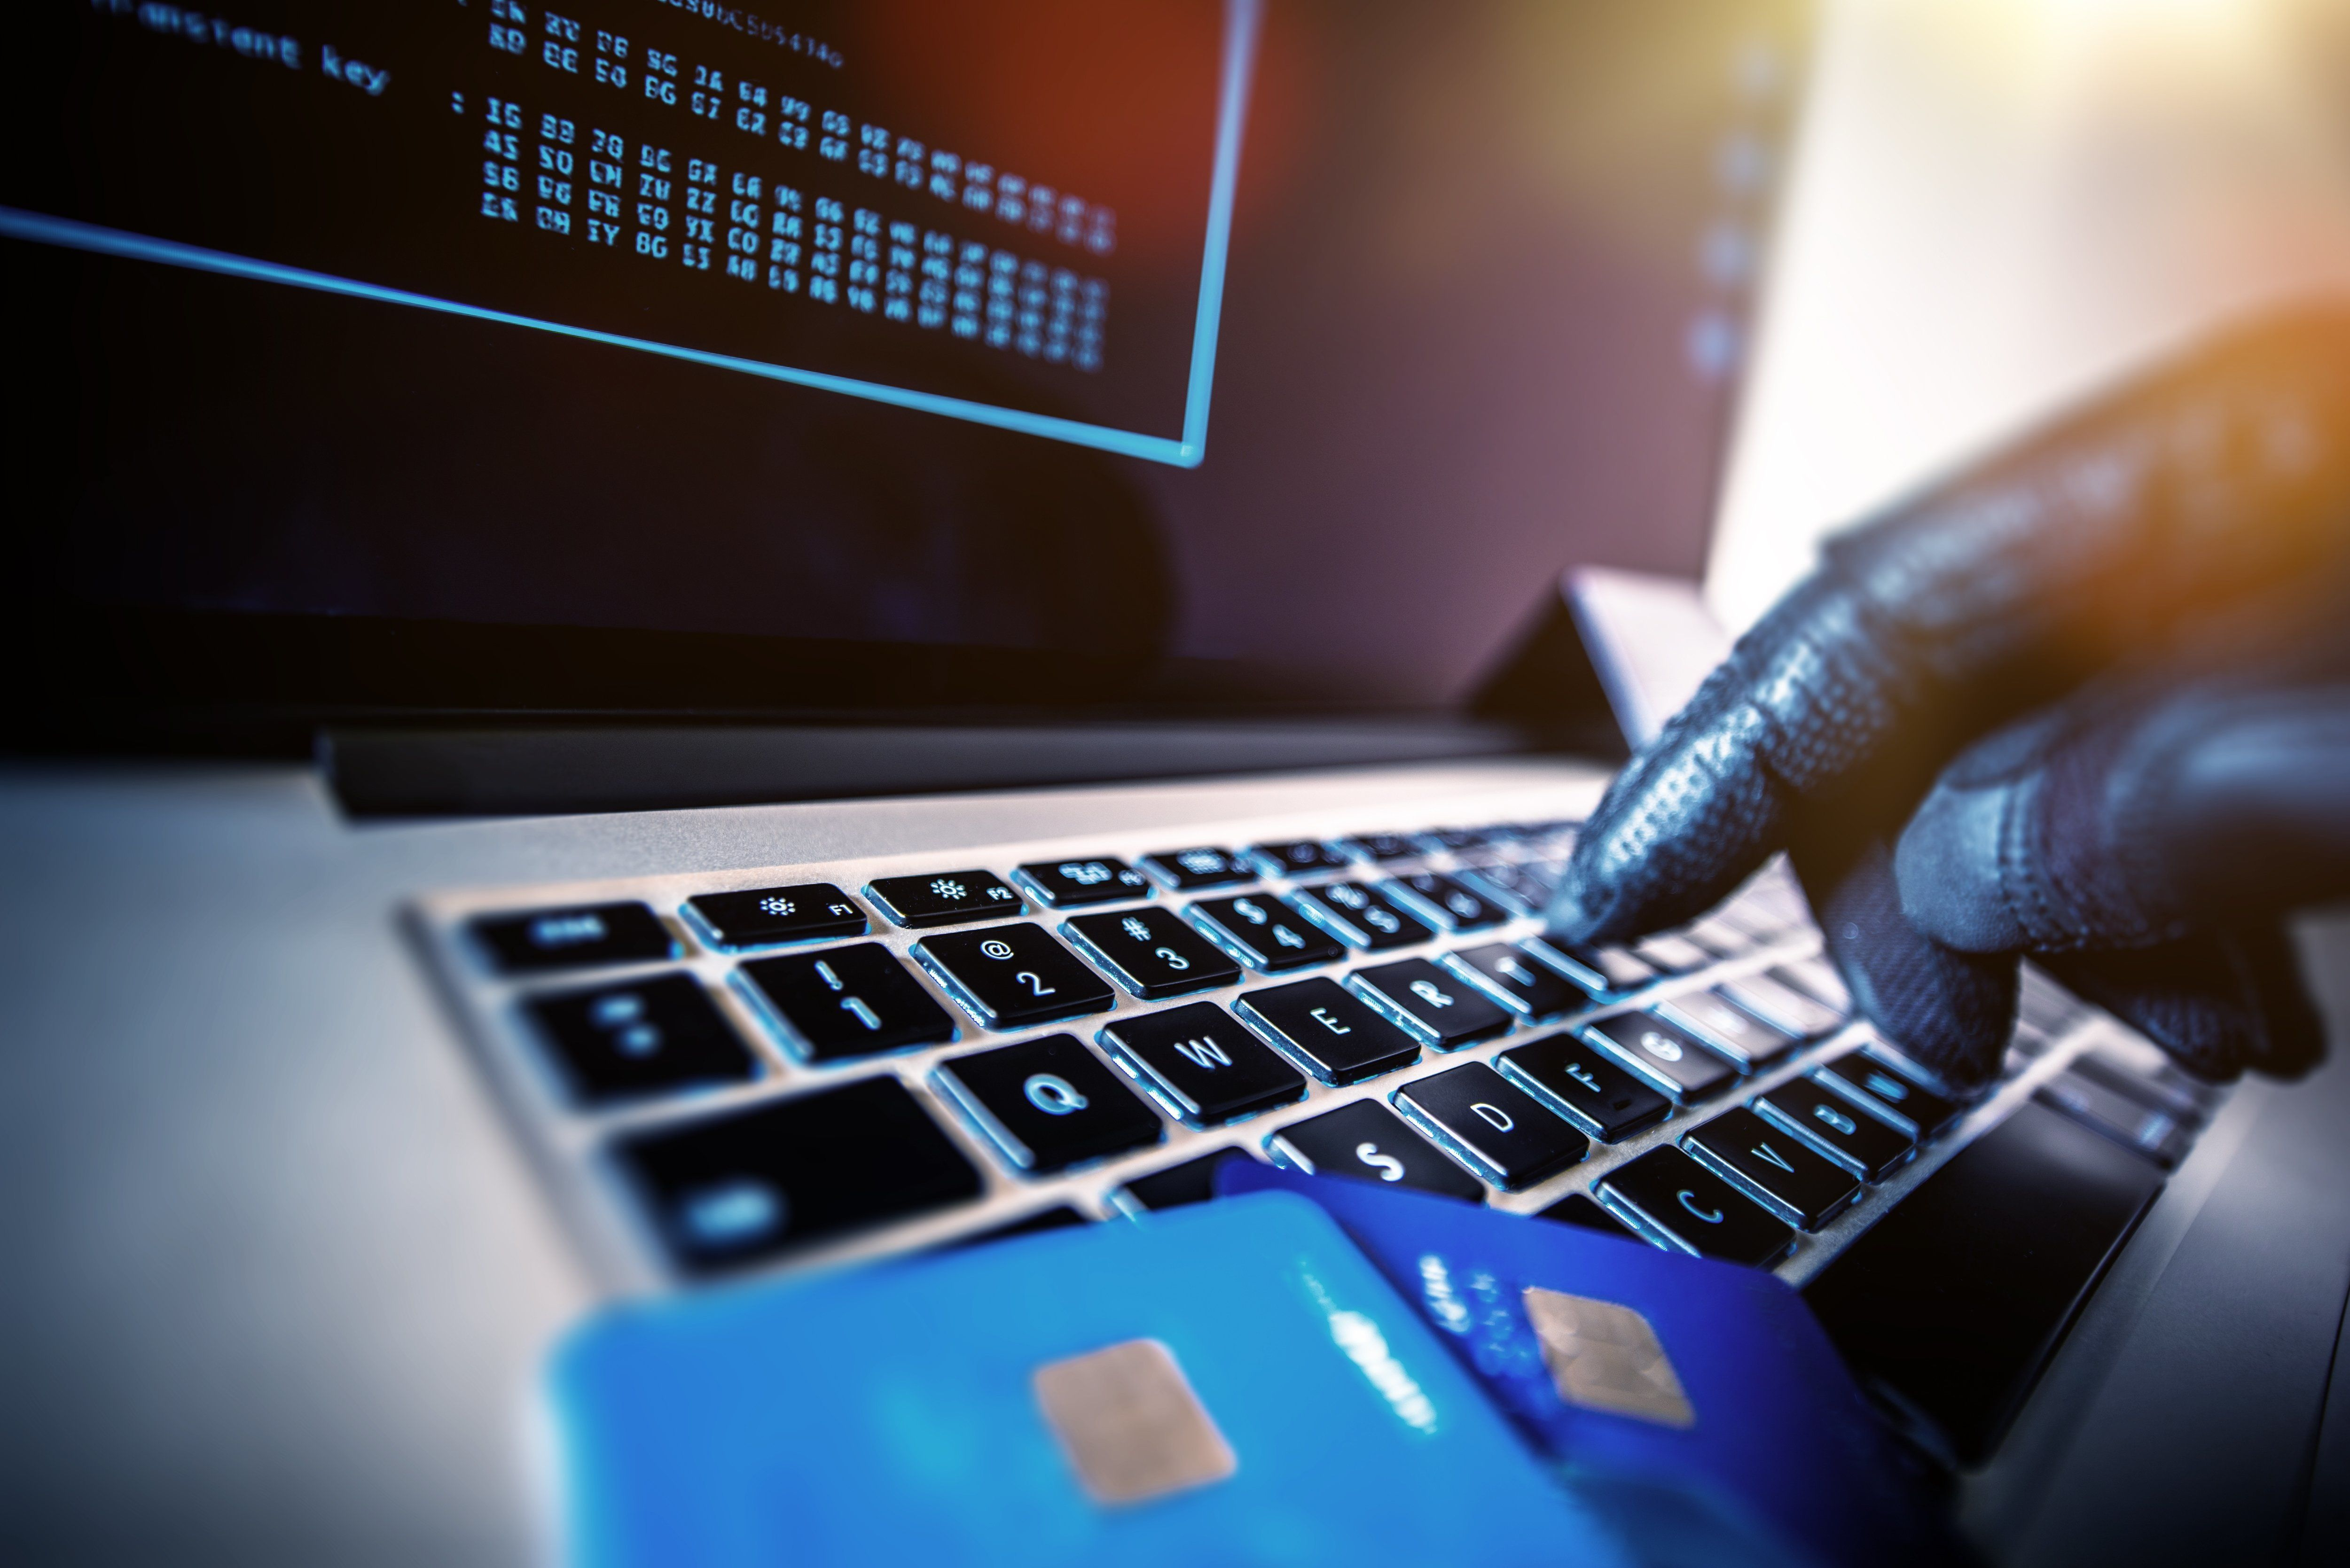 Identity Theft Has Now Soared To 'Epidemic'